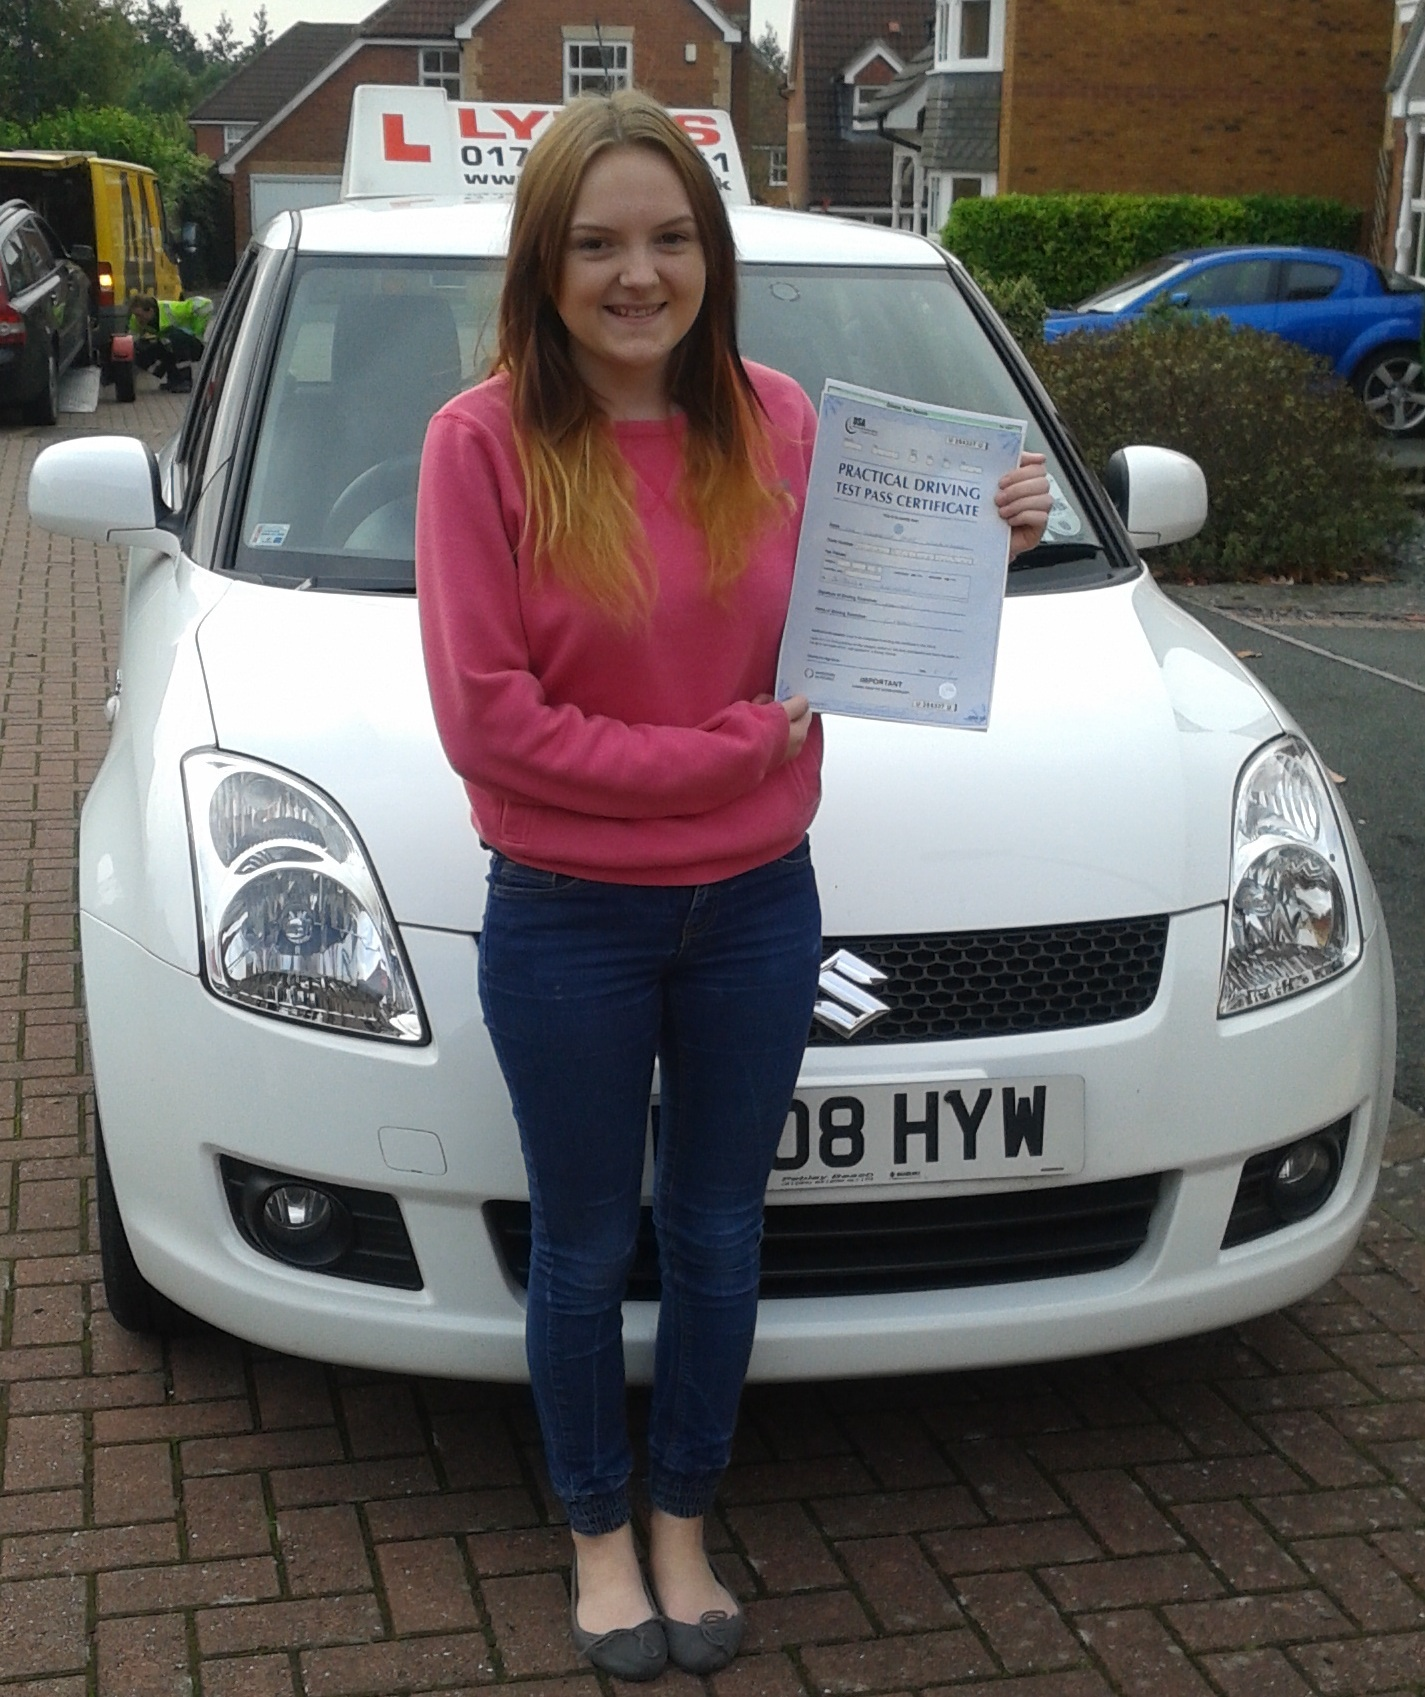 Michaella passes with Lytes Driving School